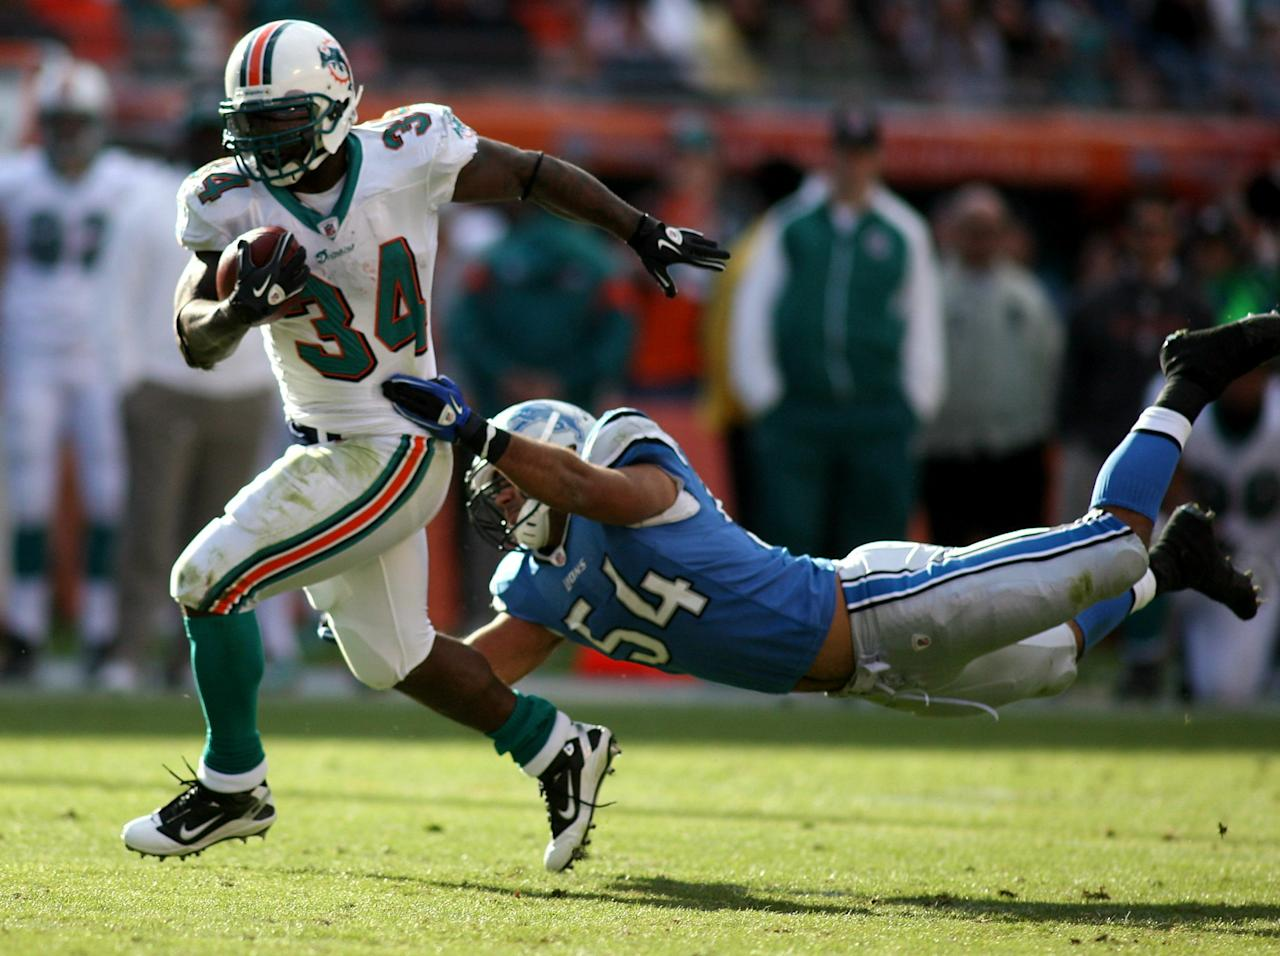 MIAMI - DECEMBER 26:  Running back Ricky Williams #34 of the Miami Dolphins breaks away from linebacker DeAndre Levy #54 of the Detroit Lions at Sun Life Stadium on December 26, 2010 in Miami, Florida. The Lions defeated the Dolphins 34-27.  (Photo by Marc Serota/Getty Images)